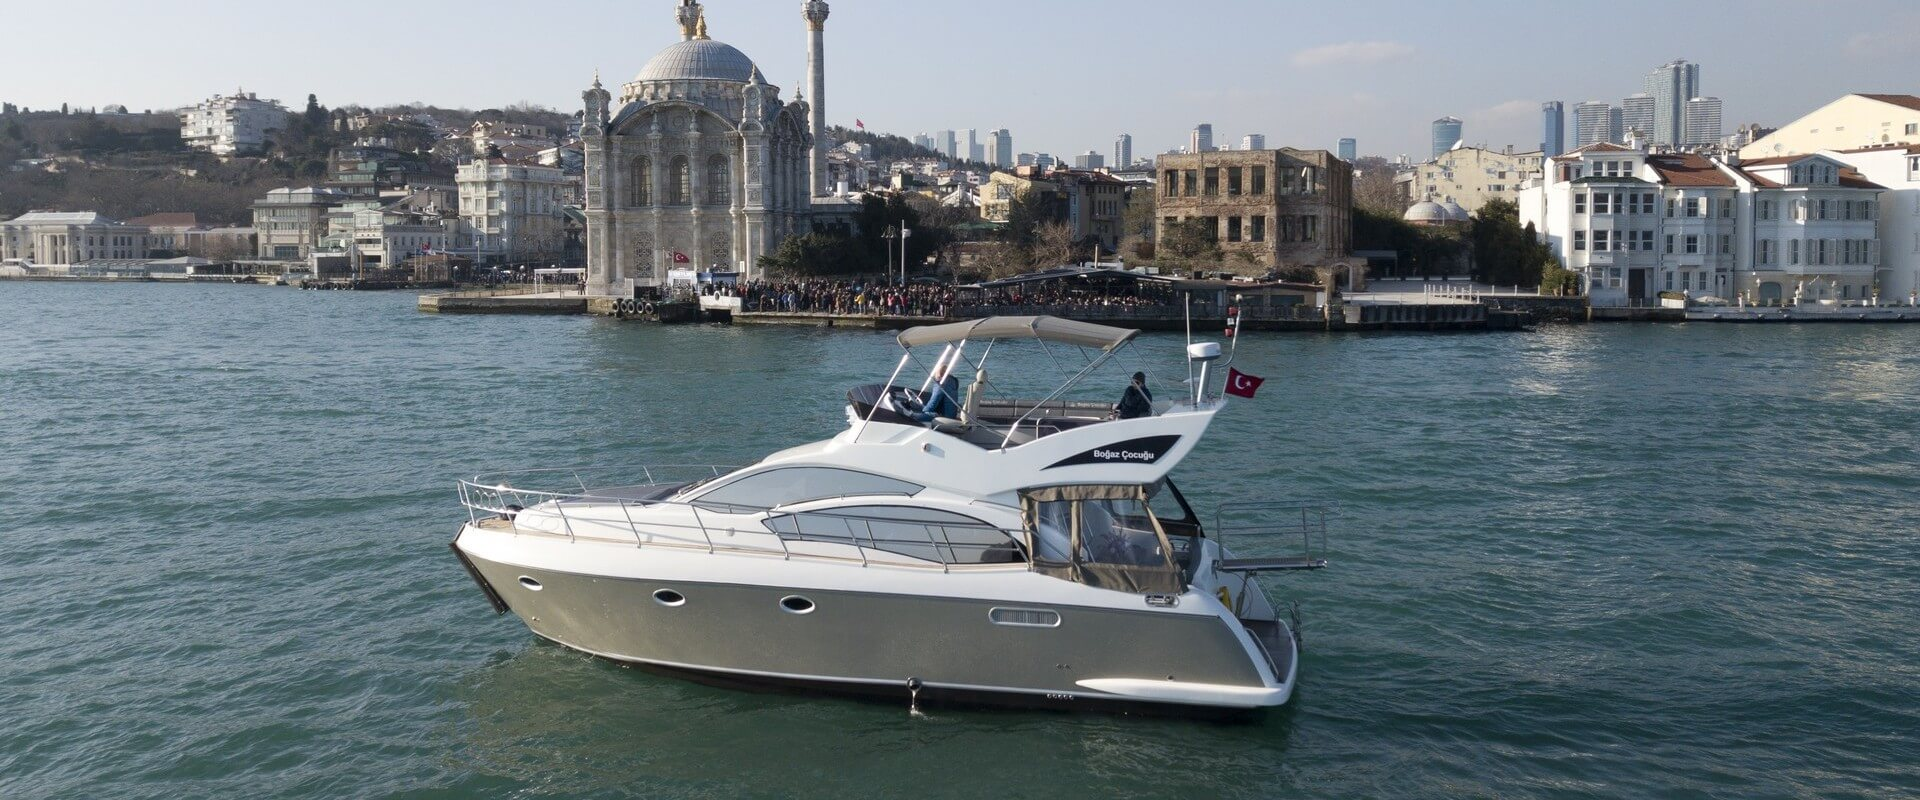 Private Yatch Bosphorus Cruise Tour